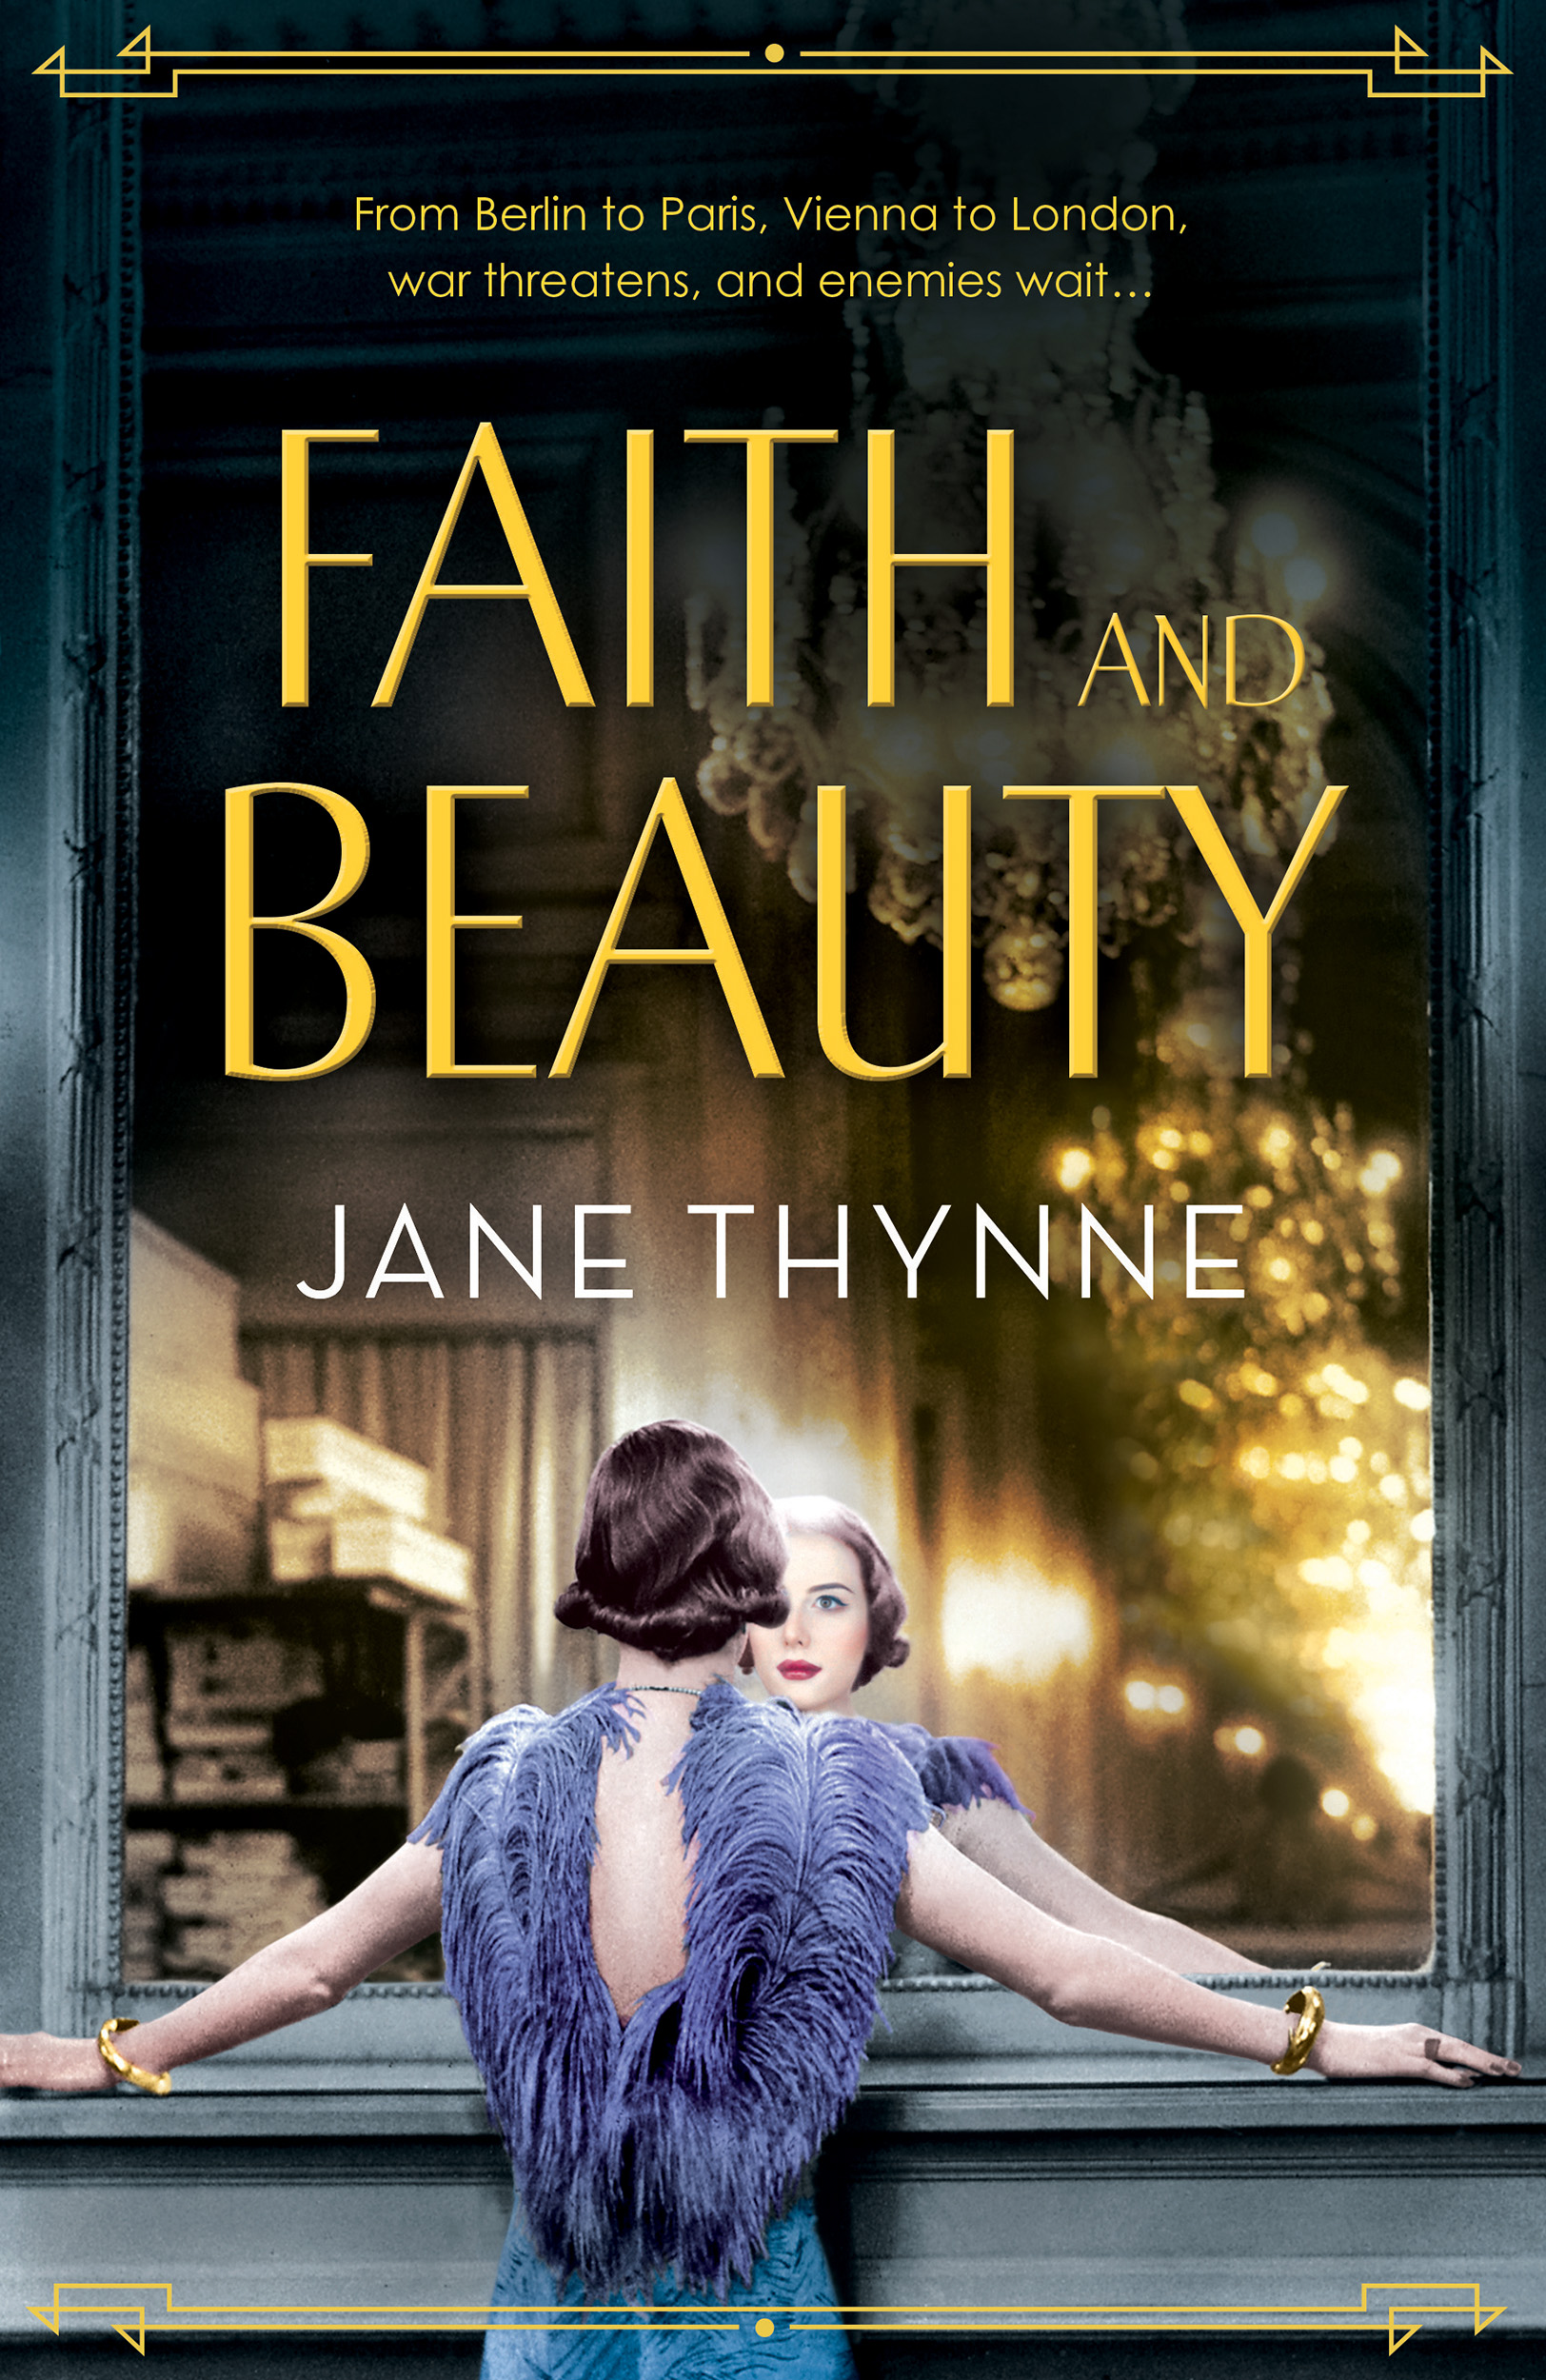 Faith and Beauty (UK) or The Pursuit of Pearls (US) Clara Vine #4 book cover